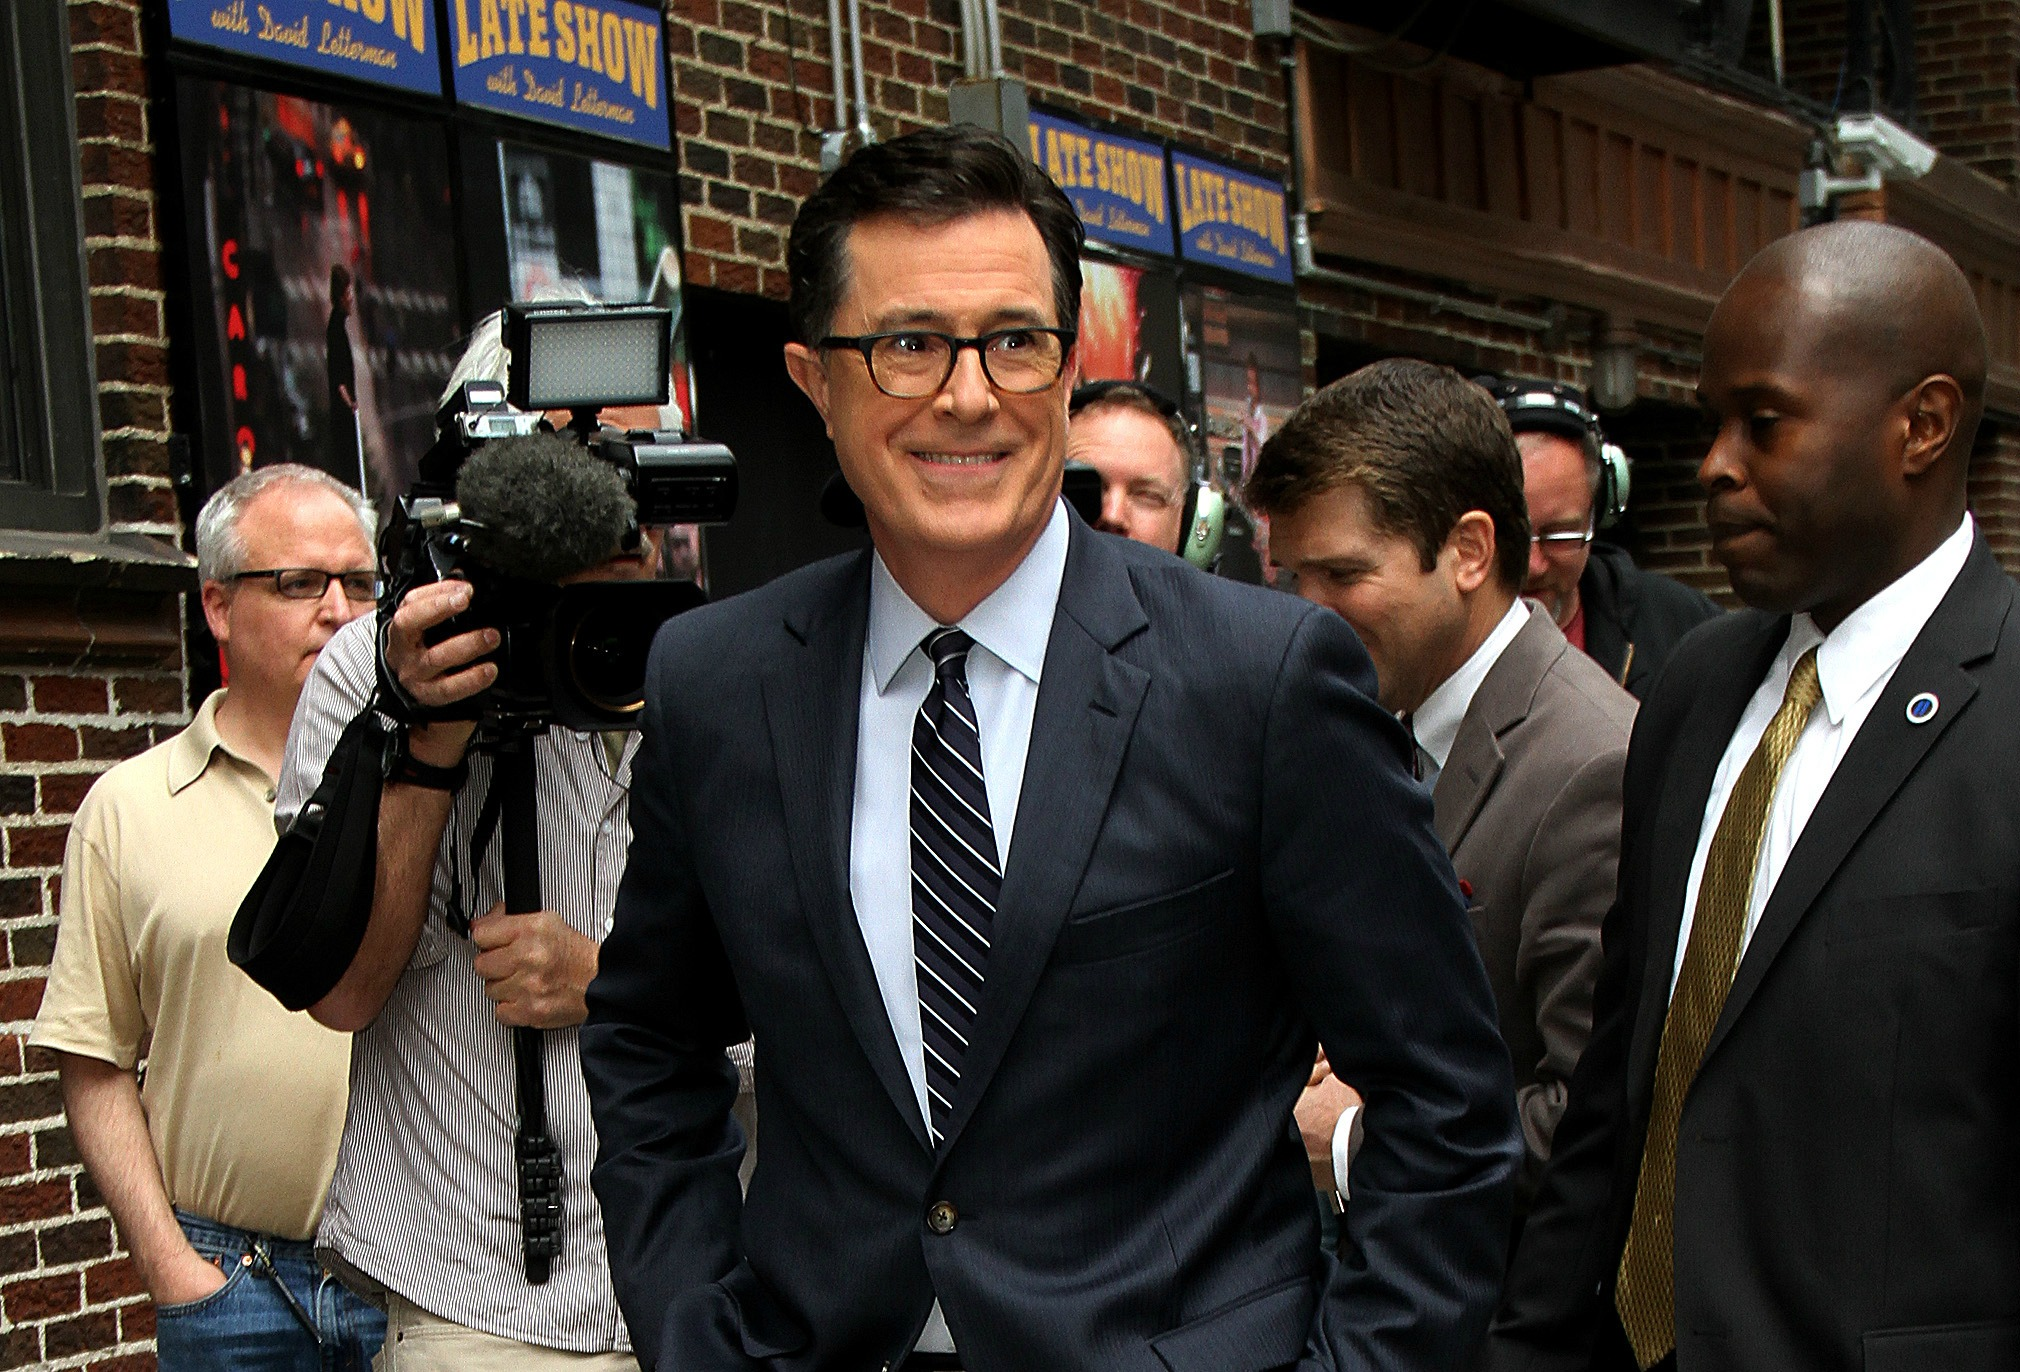 David Letterman welcomes his replacement Stephen Colbert on The Late Show